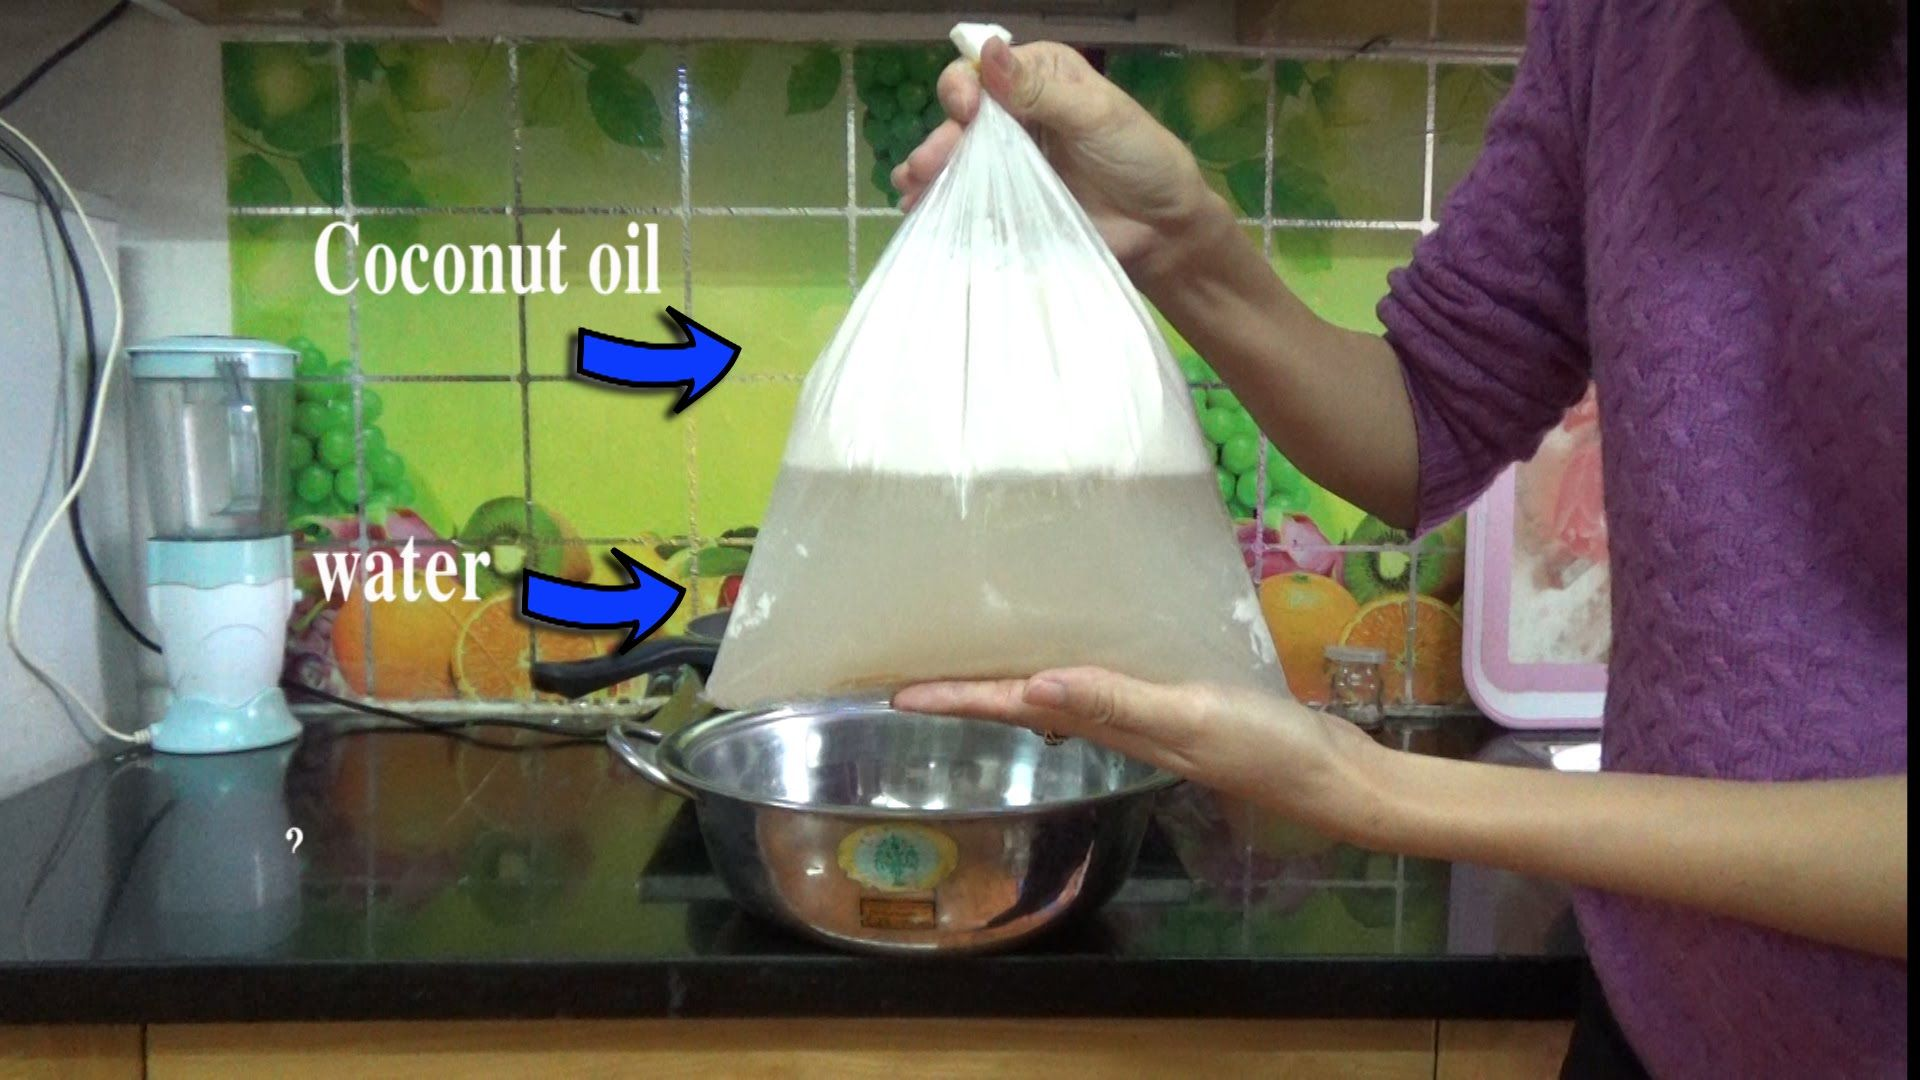 How To Make Coconut Oil In Your Home New Way Easiest Baking Soda Face Scrub Baking Soda Body Scrub Coconut Oil